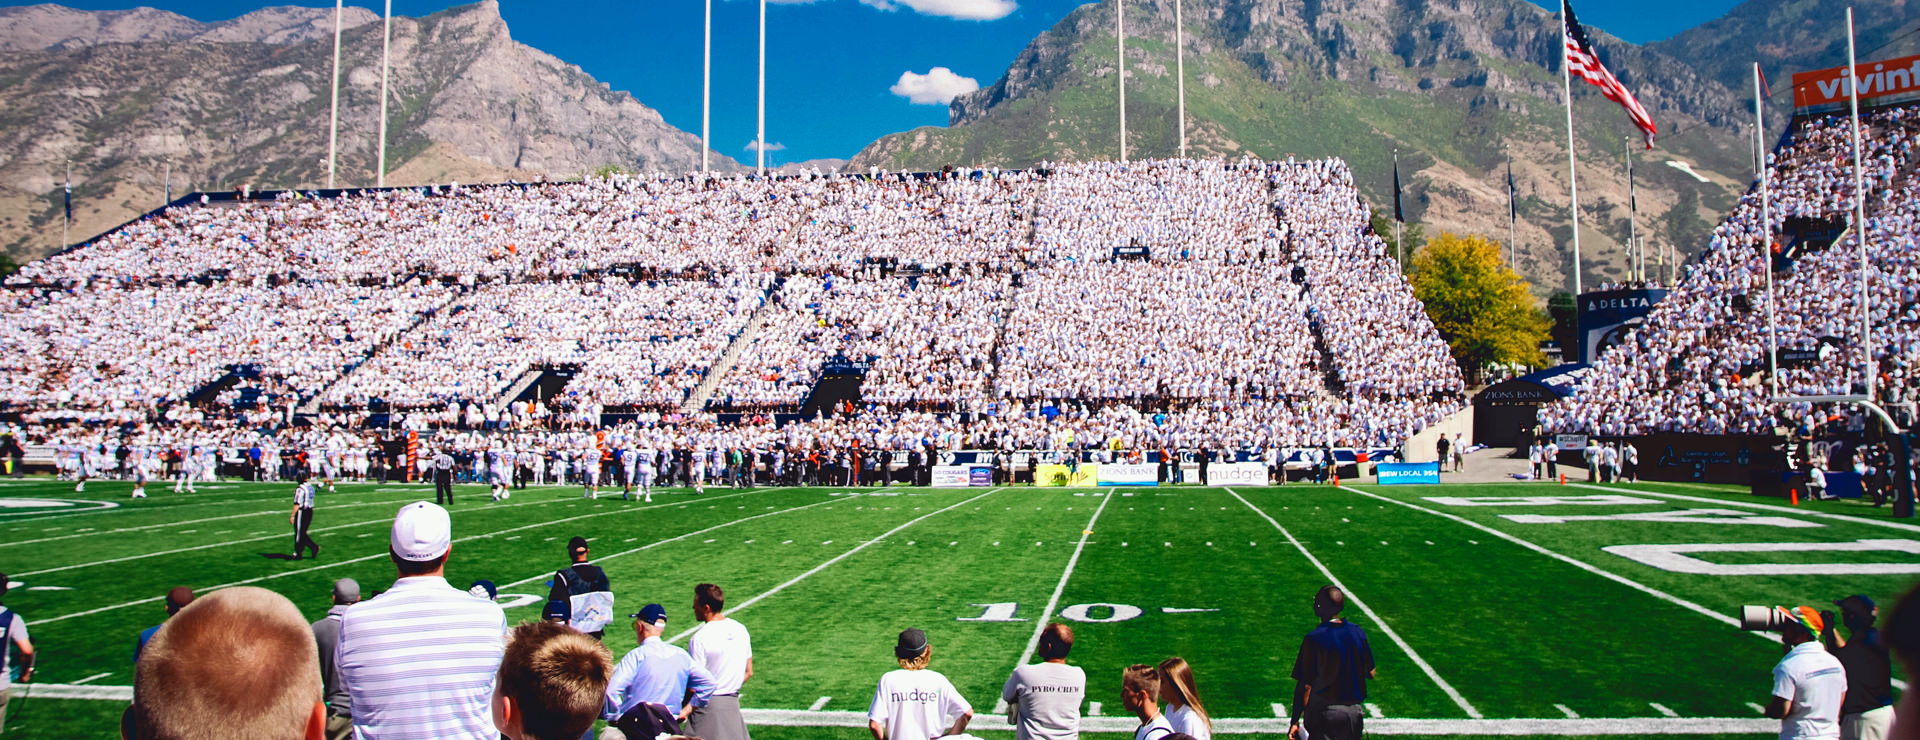 For a college football town, however, football is a vital source of revenue, one that exerts a tremendous influence on the local economy.